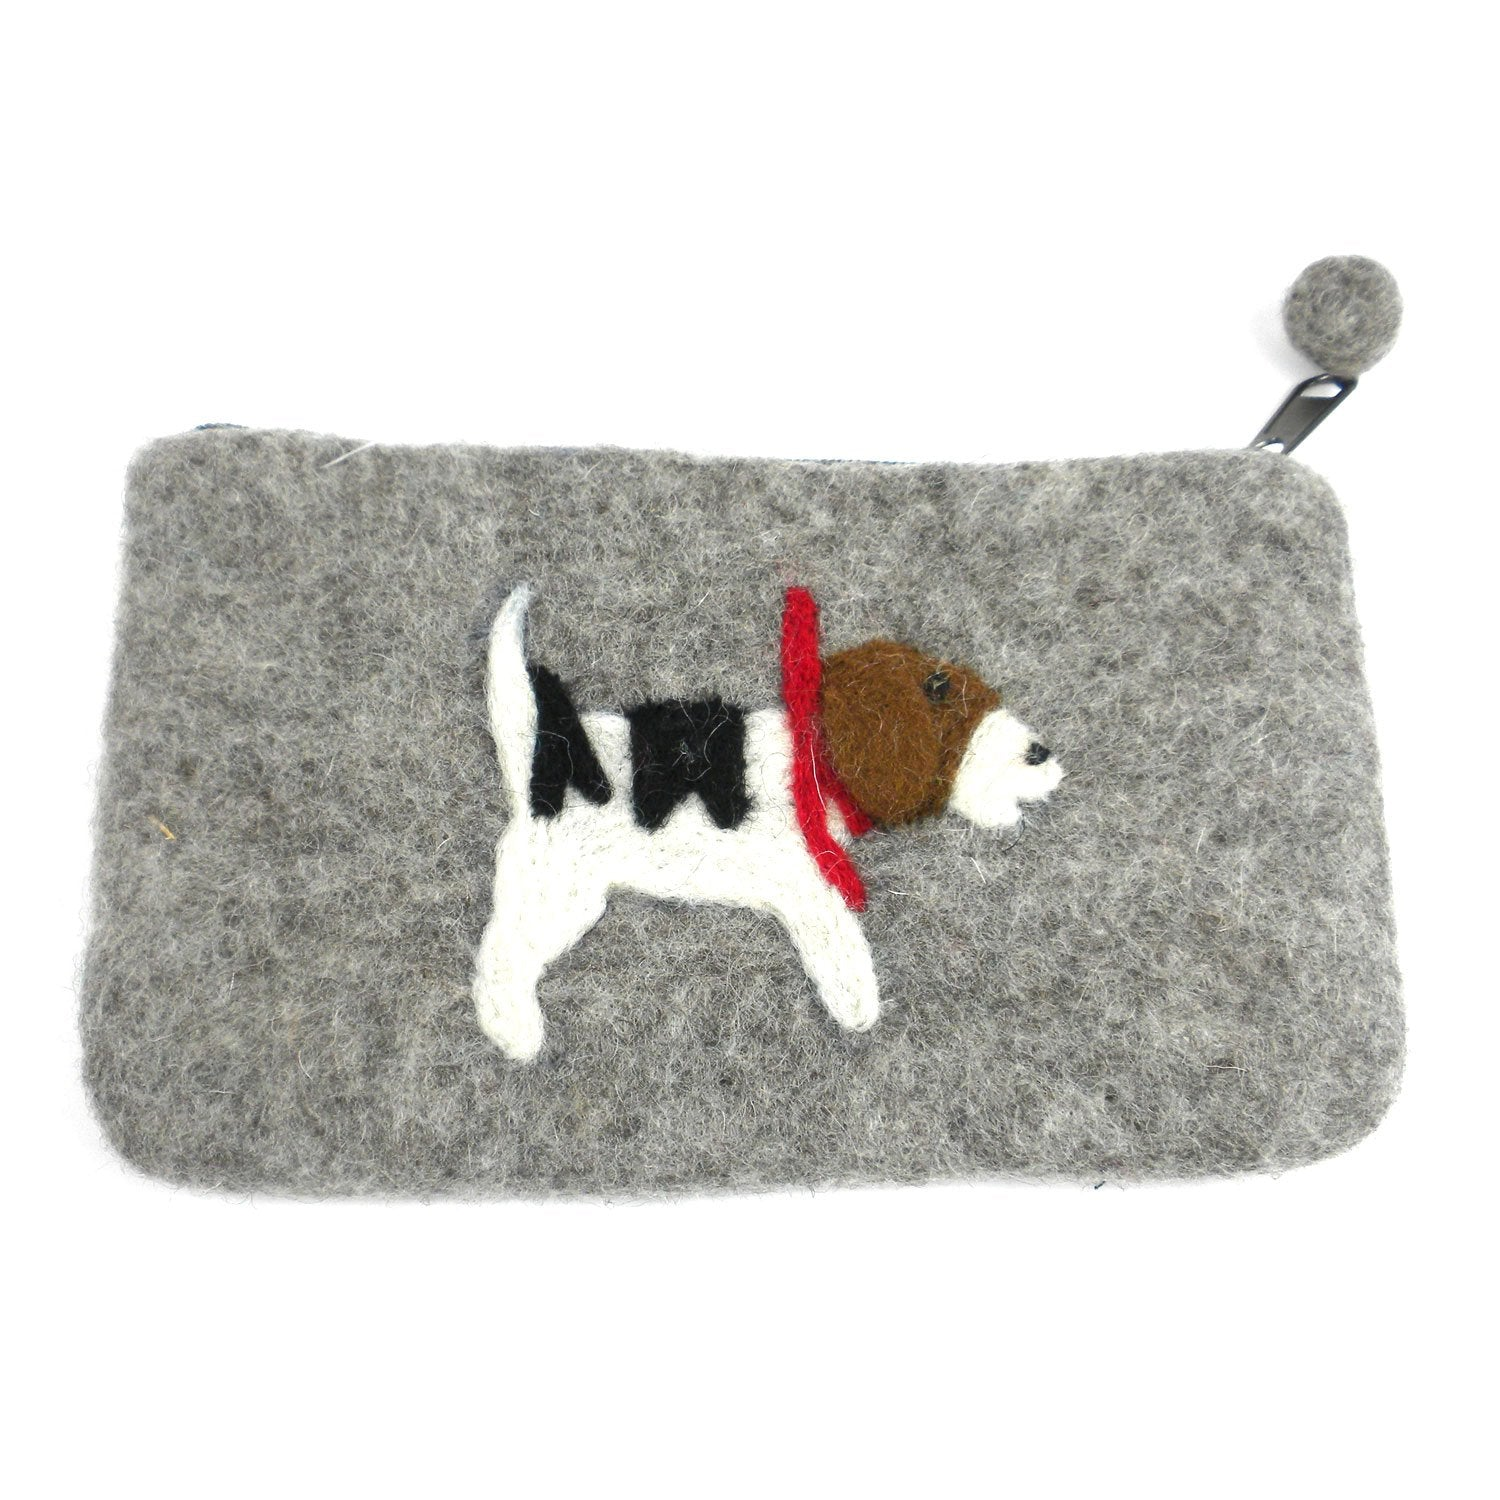 "Hand Crafted Felt Pouch from Nepal: 8"" x 4.5"", Jack Russell"